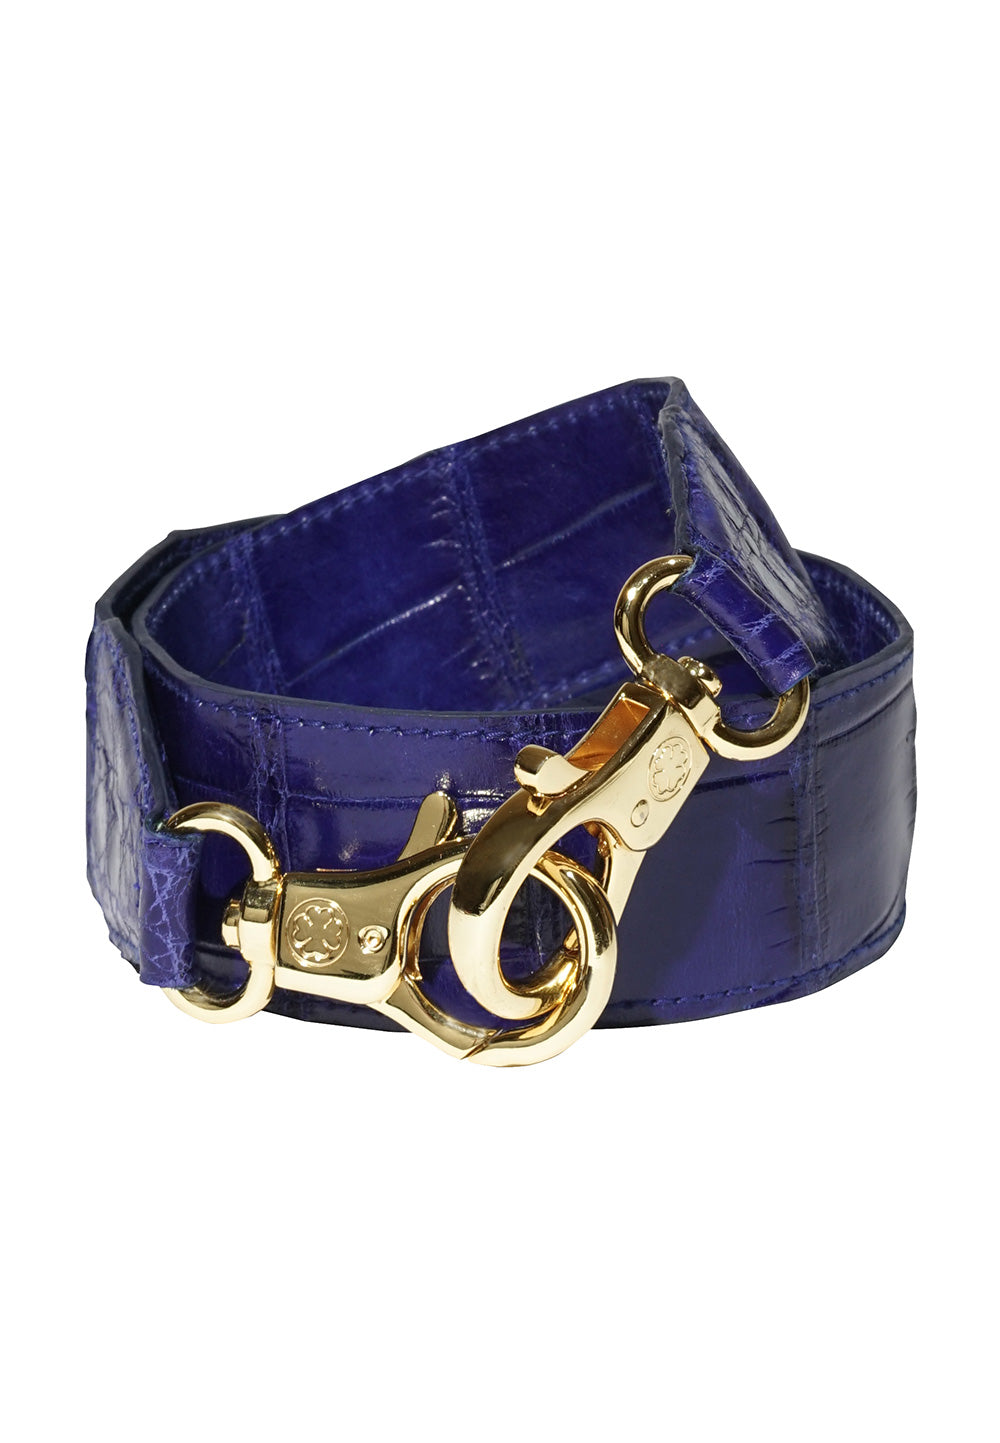 Limited Edition : Crocodile Skin Leather Straps (Blue Electric)